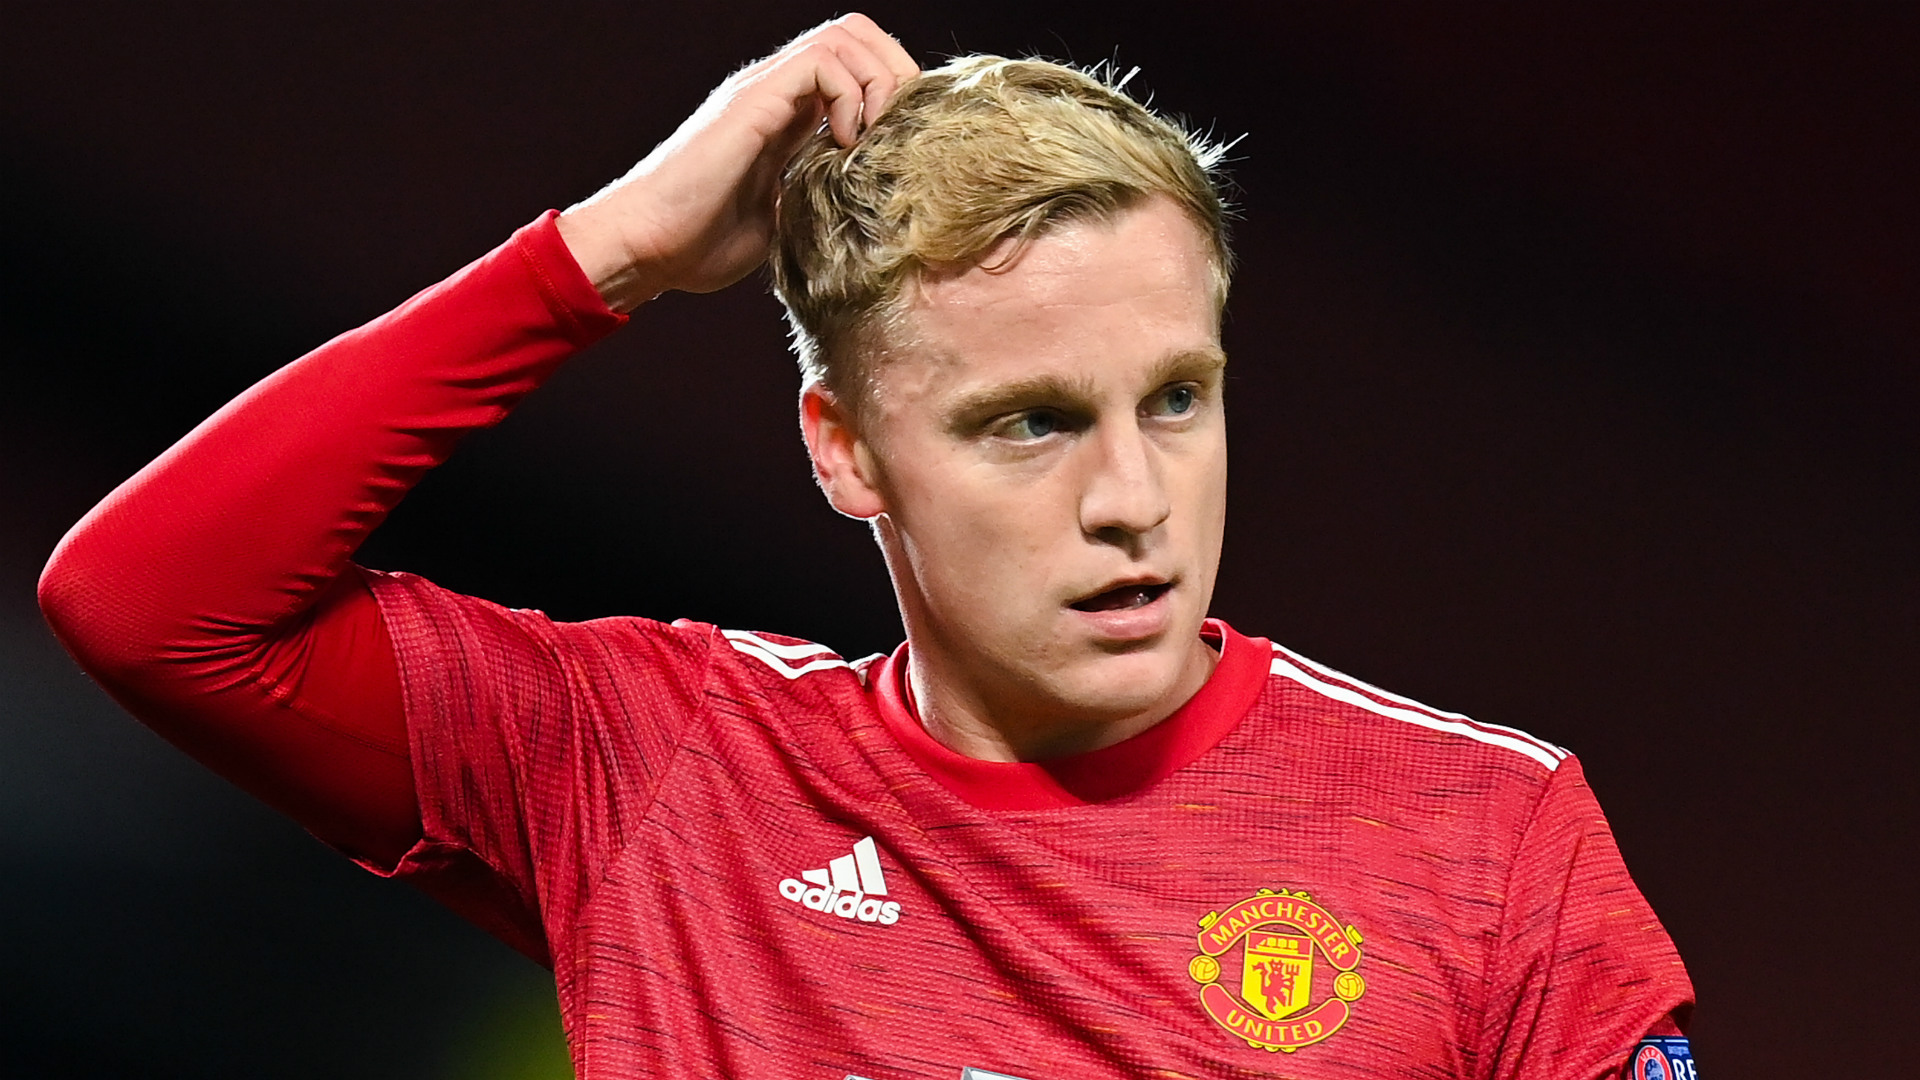 'Plenty of clubs will want Van de Beek if he flops at Man Utd' – Too early to judge Dutchman, says Hoek